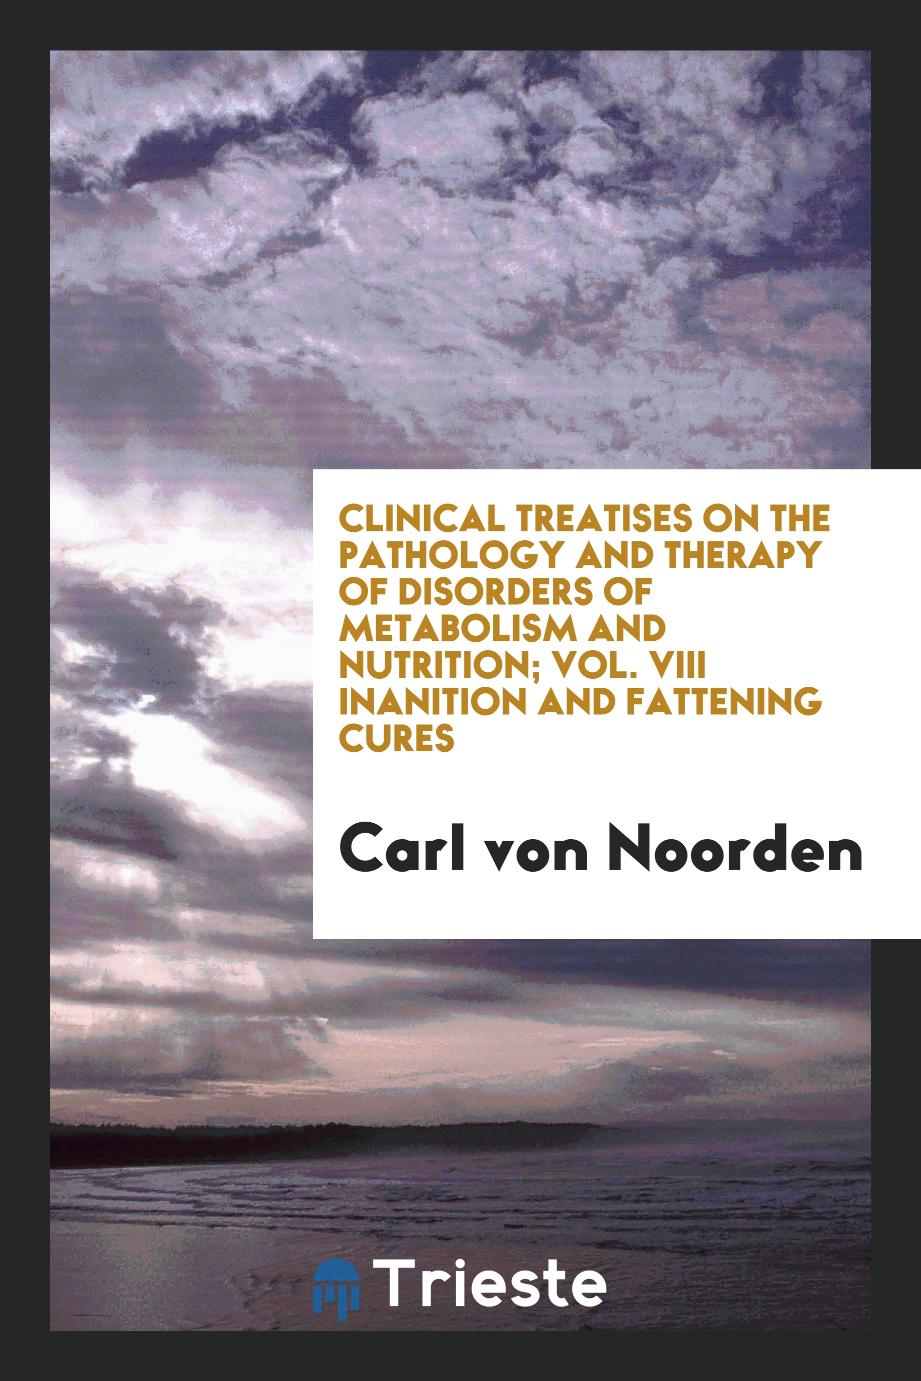 Clinical Treatises on the Pathology and Therapy of Disorders of Metabolism and Nutrition; Vol. VIII Inanition and Fattening Cures